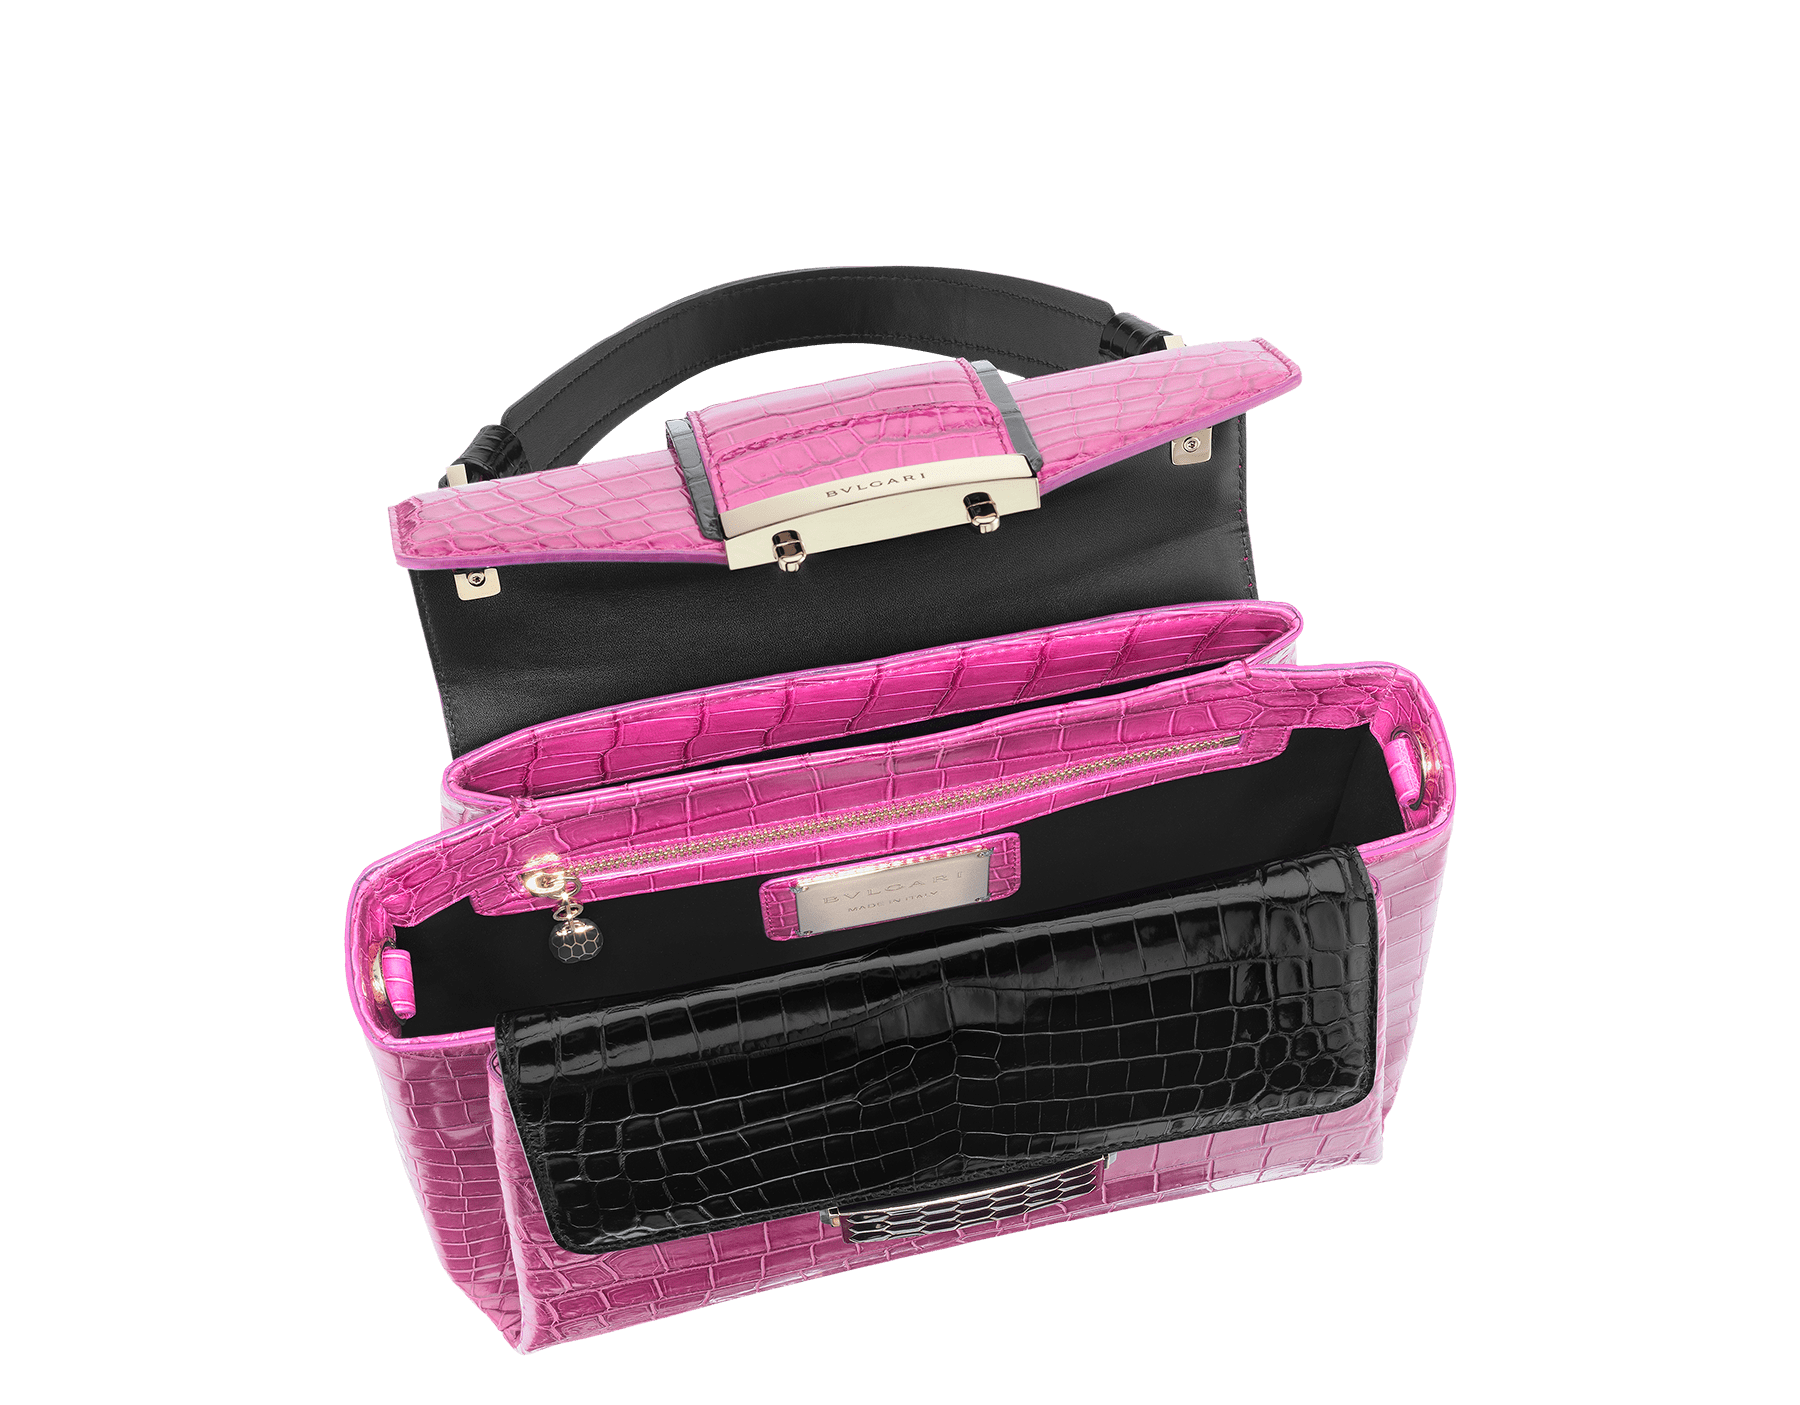 Top handle bag Serpenti Viper in raspberry agate and black shiny crocodile skin. Brass light gold plated hardware and snap closure in black shiny enamel with iconic Scaglie design and lateral push buttons in green malachite stones. One front compartment with internal flap cover, one zipped pocket and one open pocket in the central compartment, one back open compartment. Internal metal tag featuring the Bulgari logo. Adjustable and removable shoulder strap Small size. 27 x 20 x 11 cm. - 10.6 x 7.8 x 4.3 281722 image 3